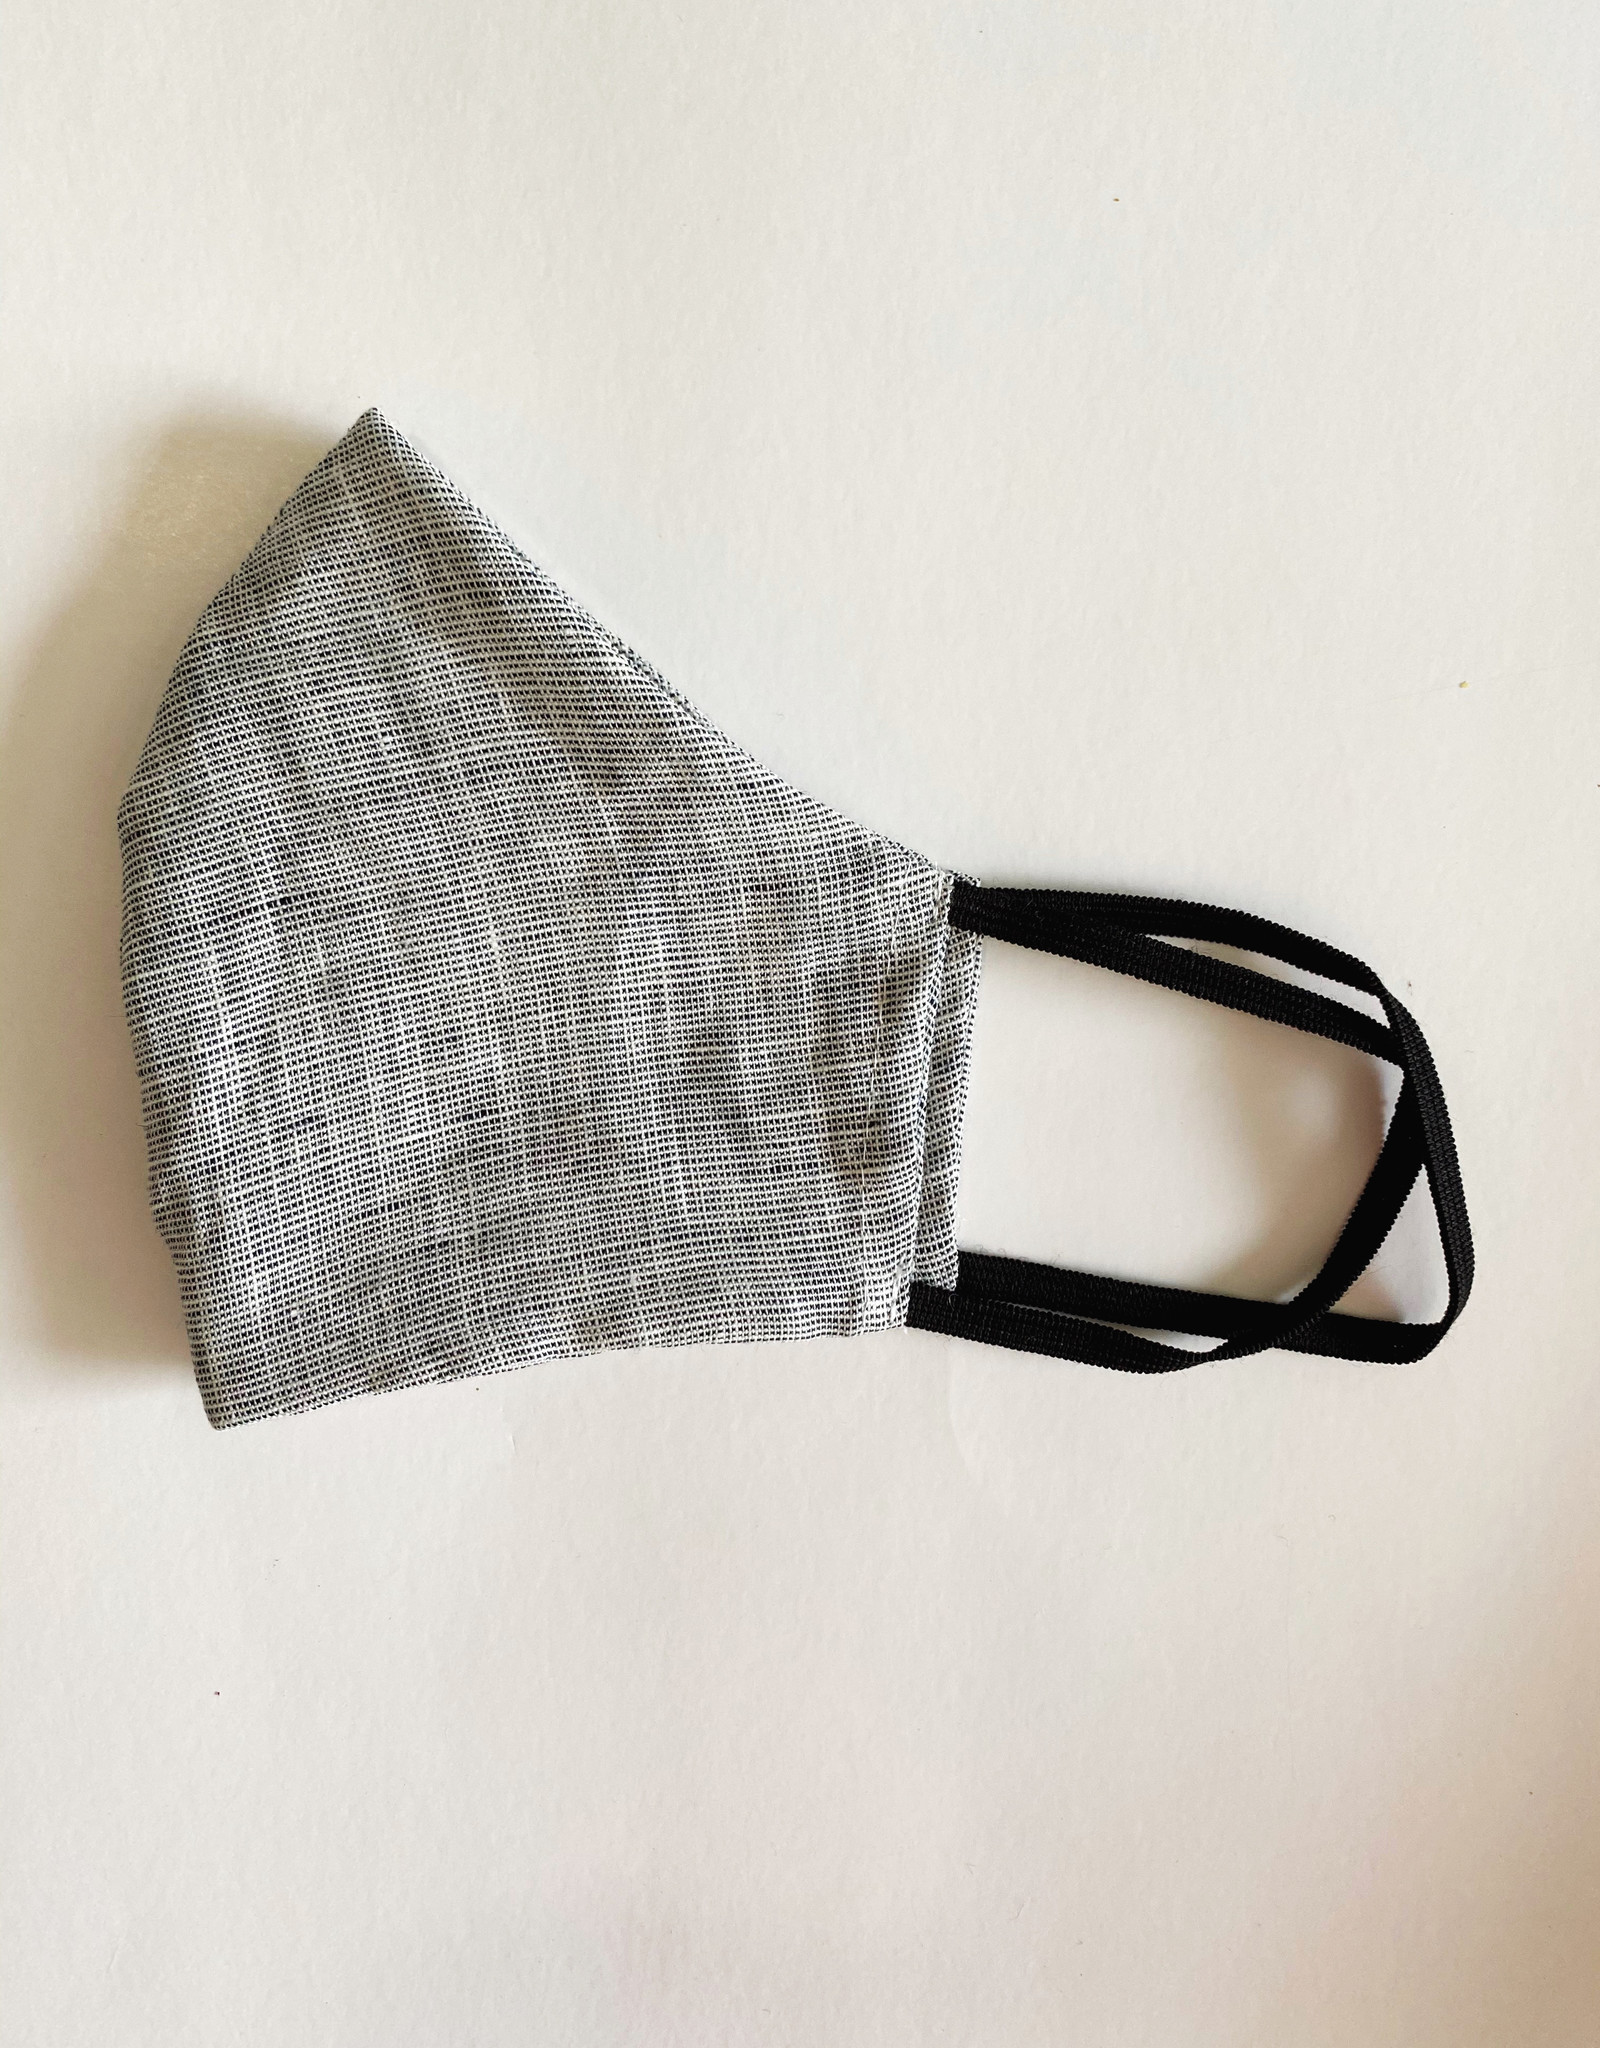 M SQUARE M SQUARE FACE MASK BLACK WHITE TWEED